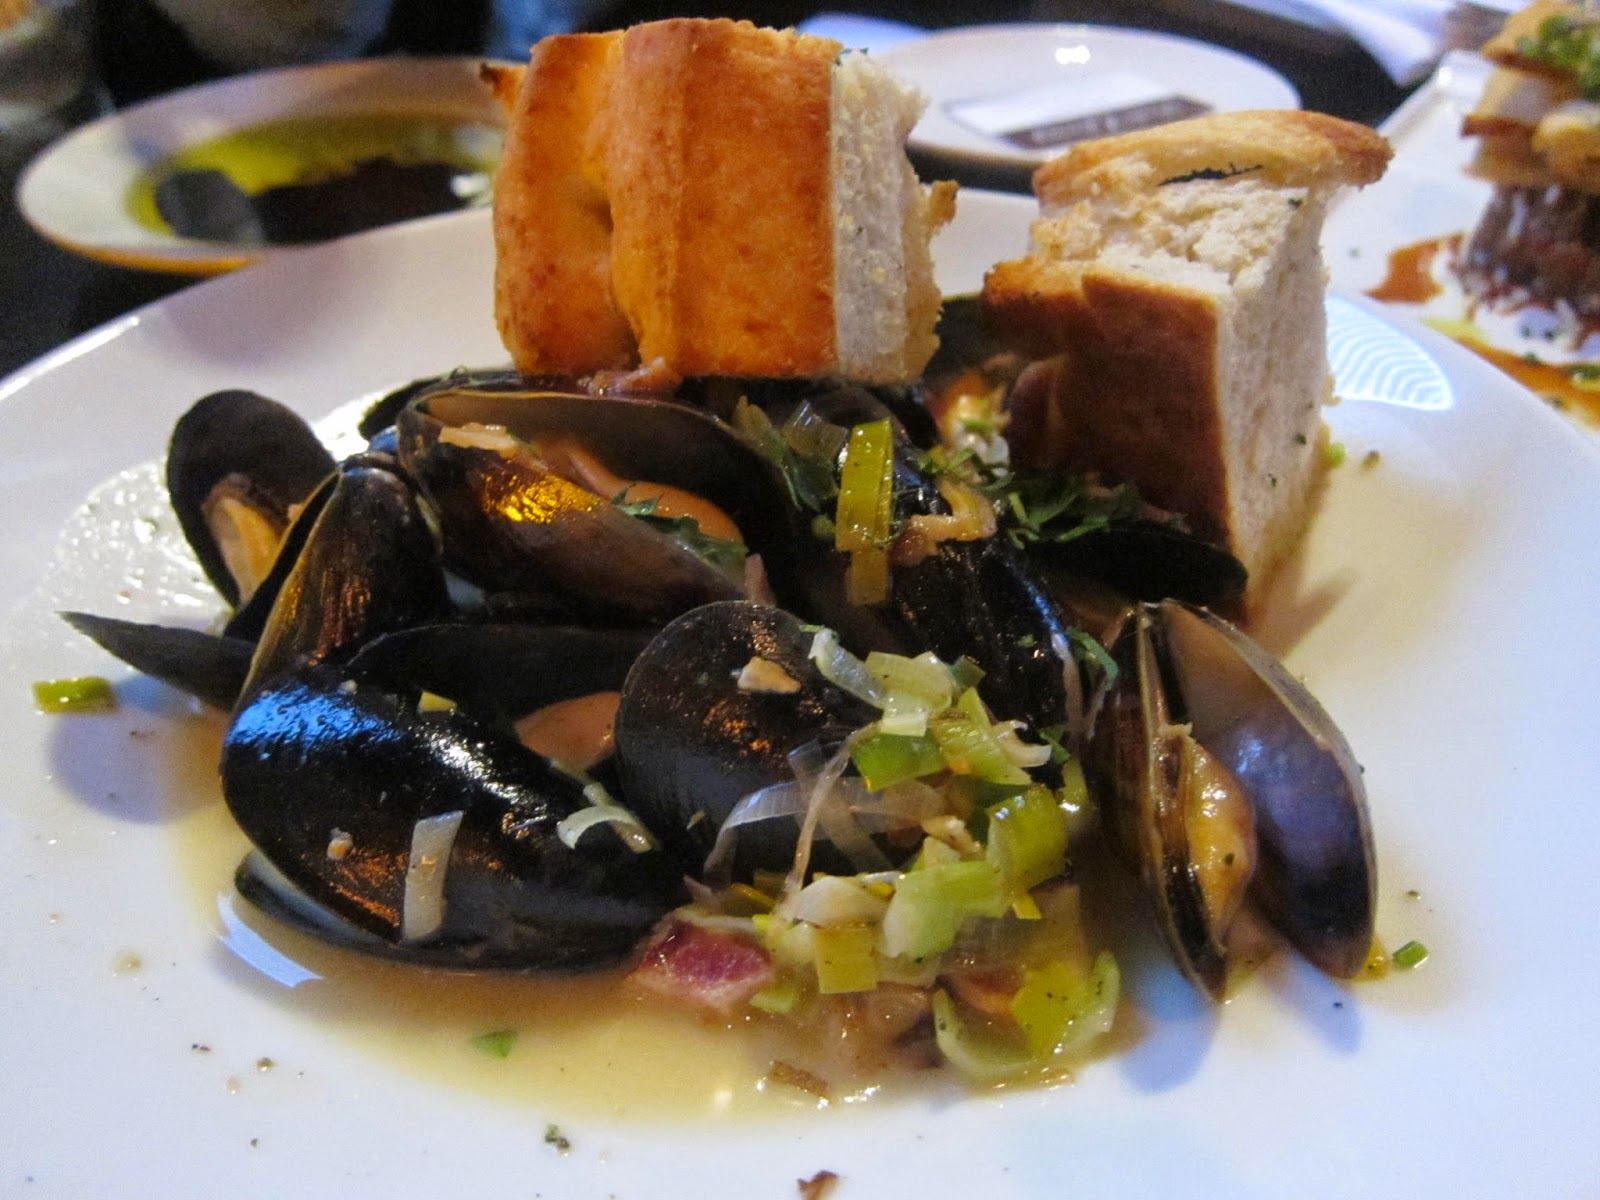 P.E.I. Mussels at Orta | The Economical Eater